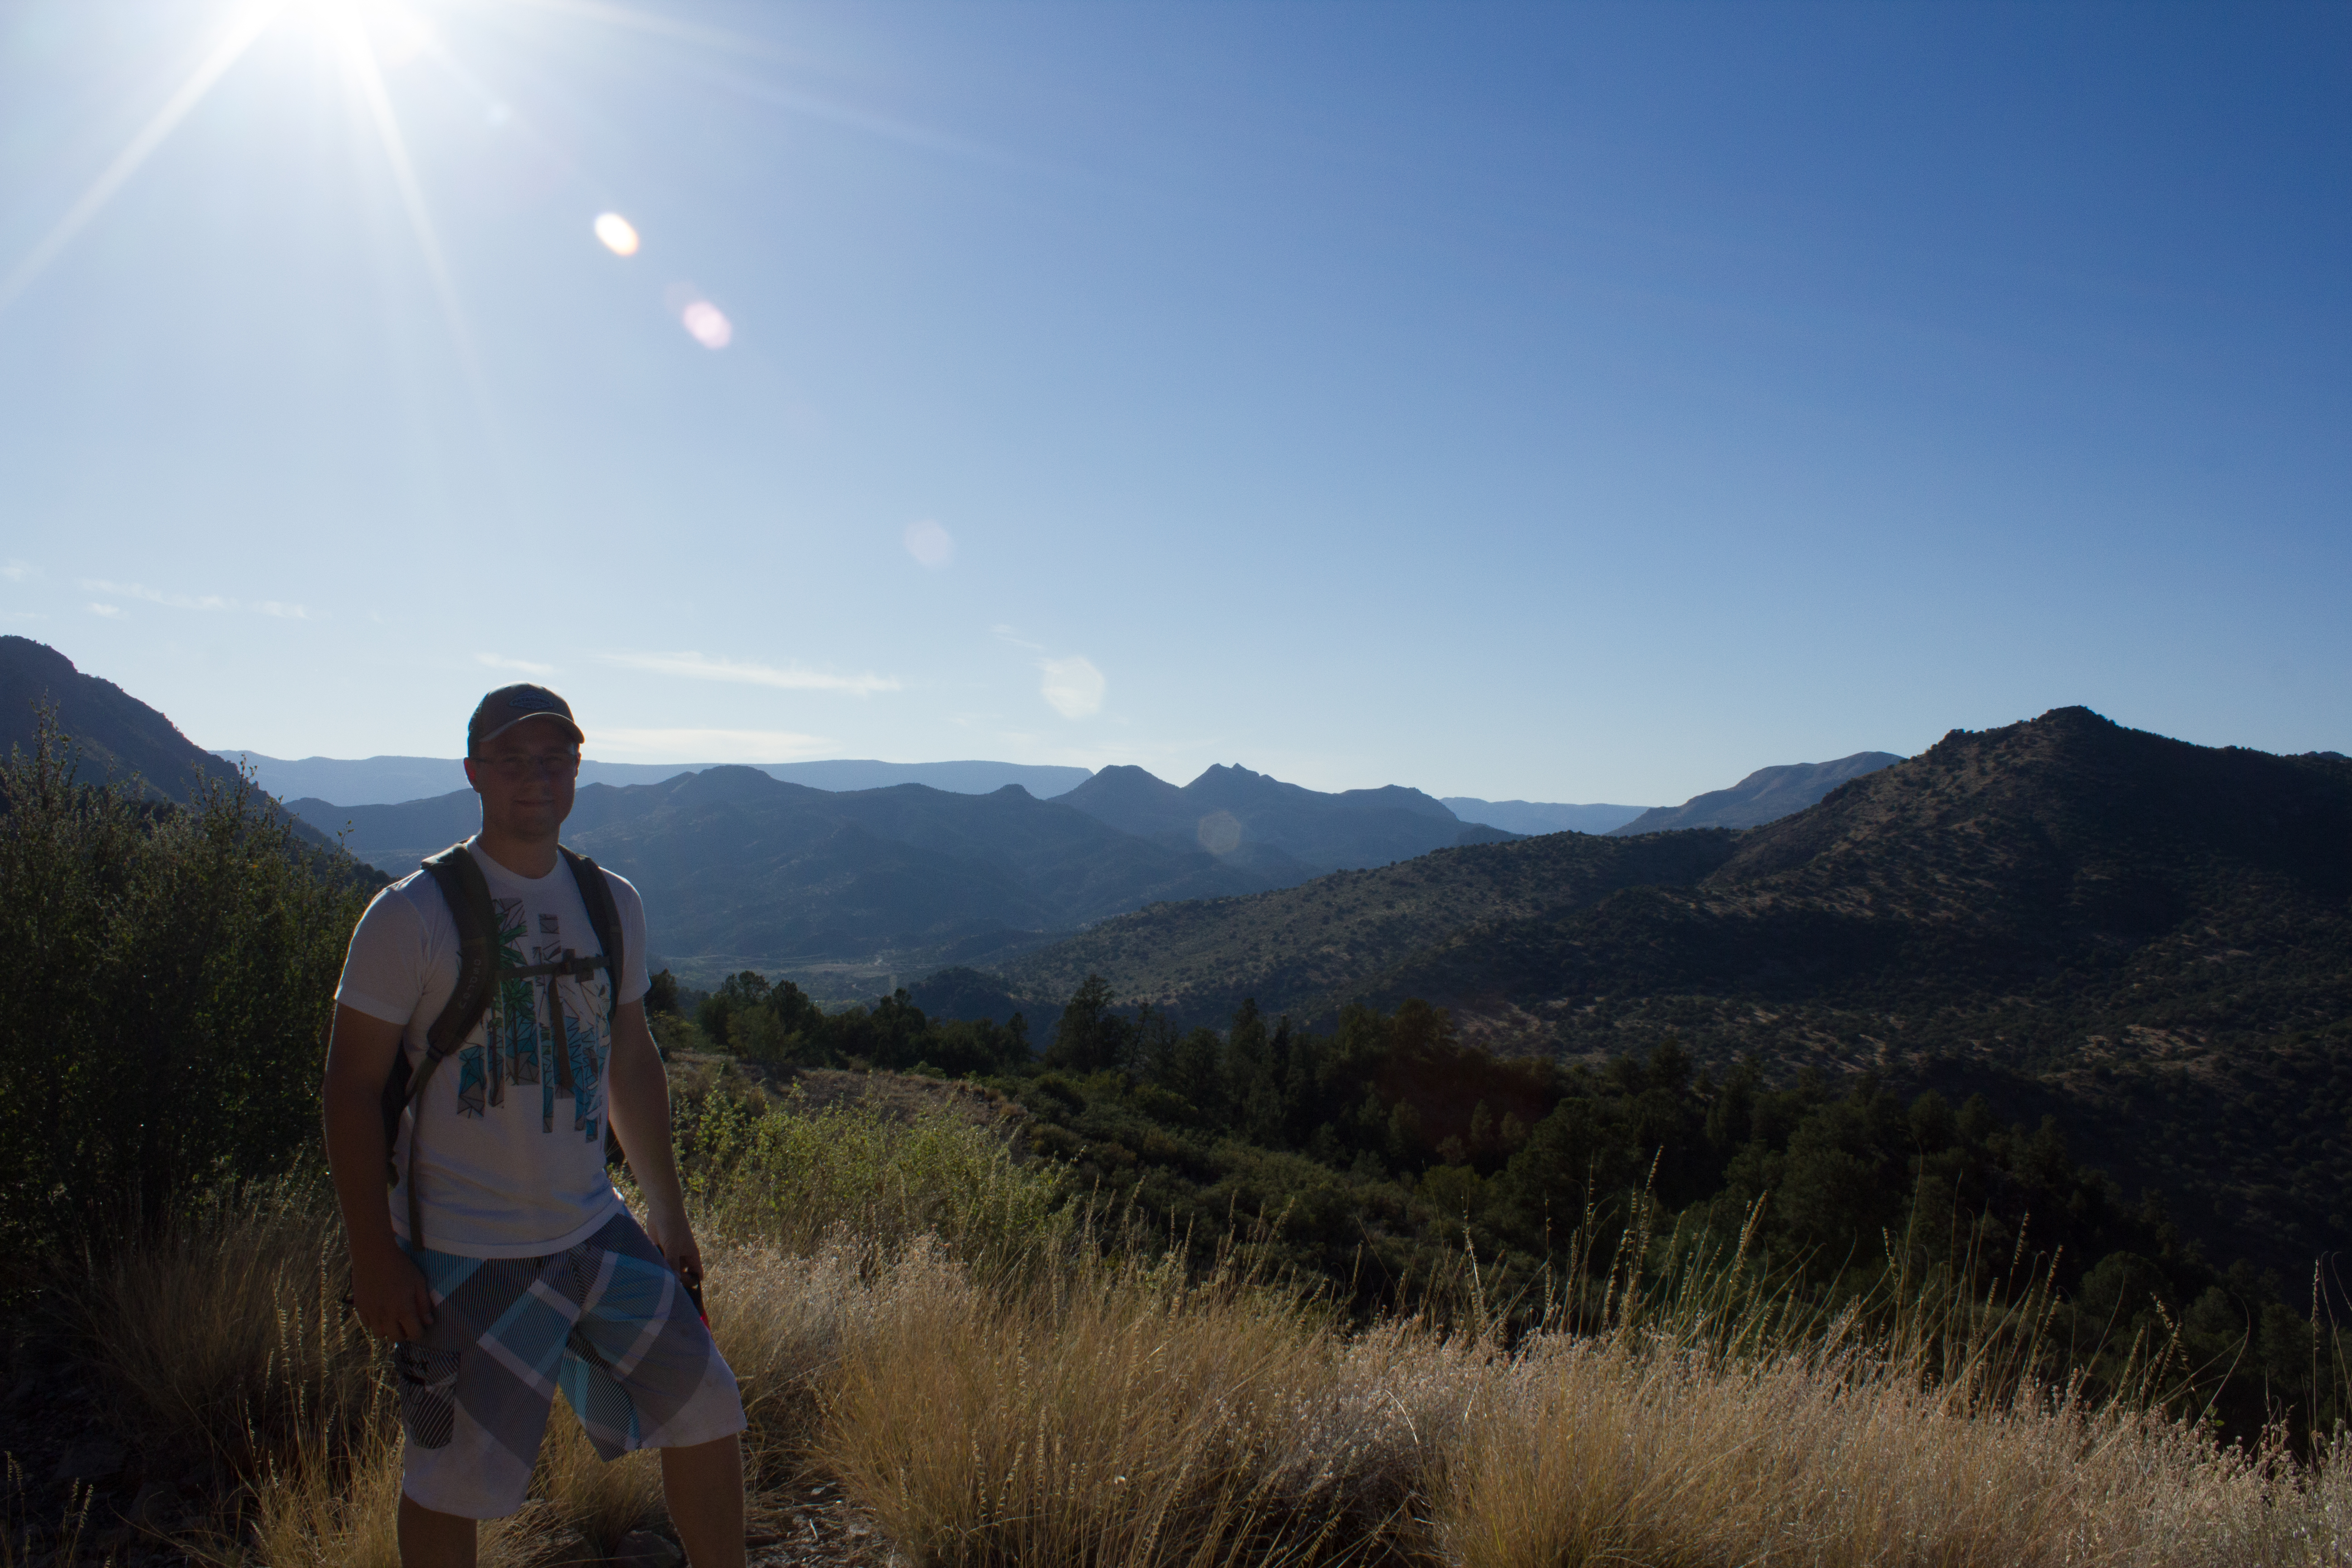 UK BMES member Dillon Huffman found some time for hiking after presenting his research on sleep modulation.